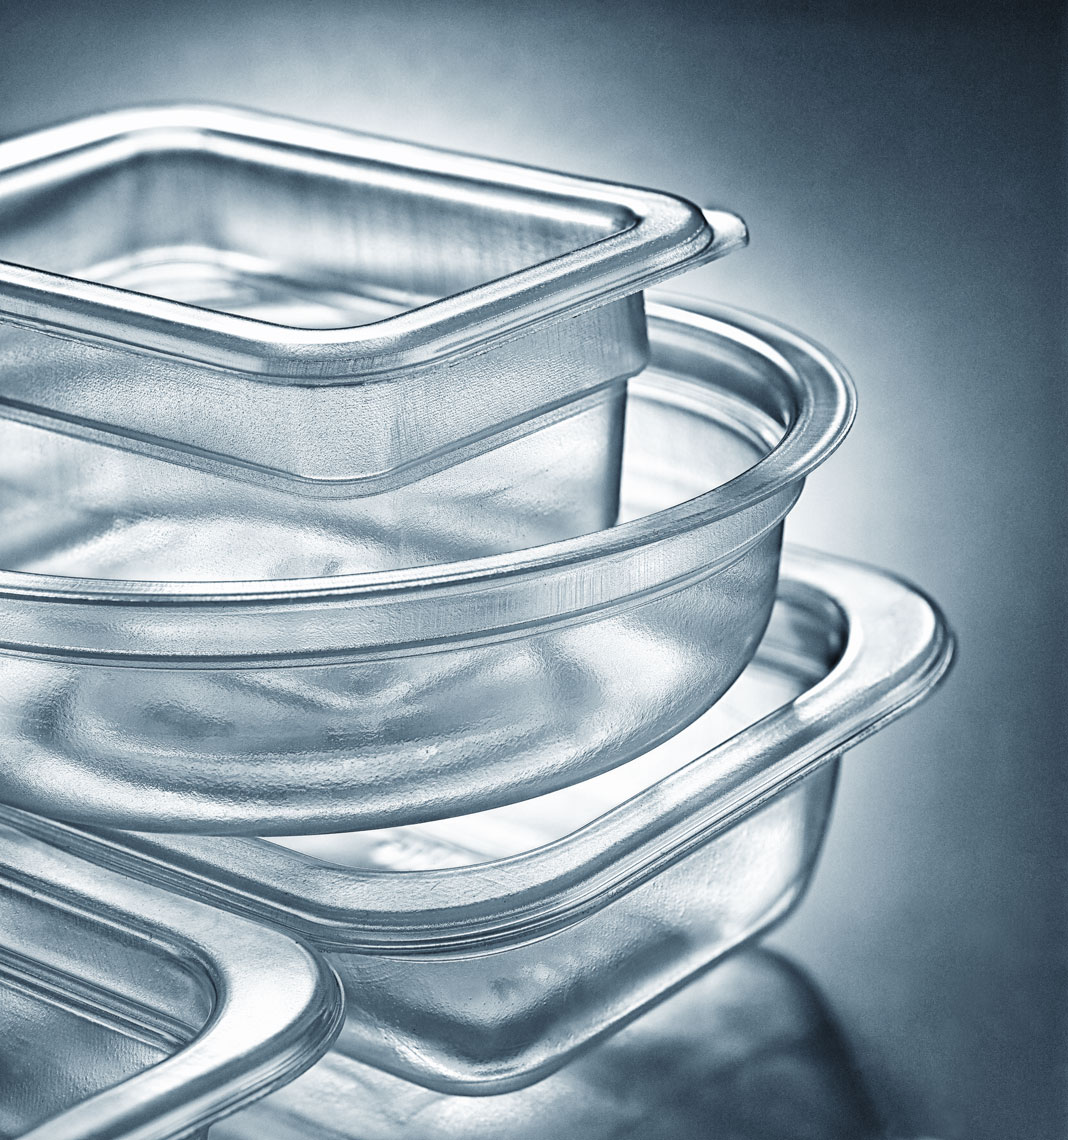 clear glass/ baking dishes/blue bkgd/product photography